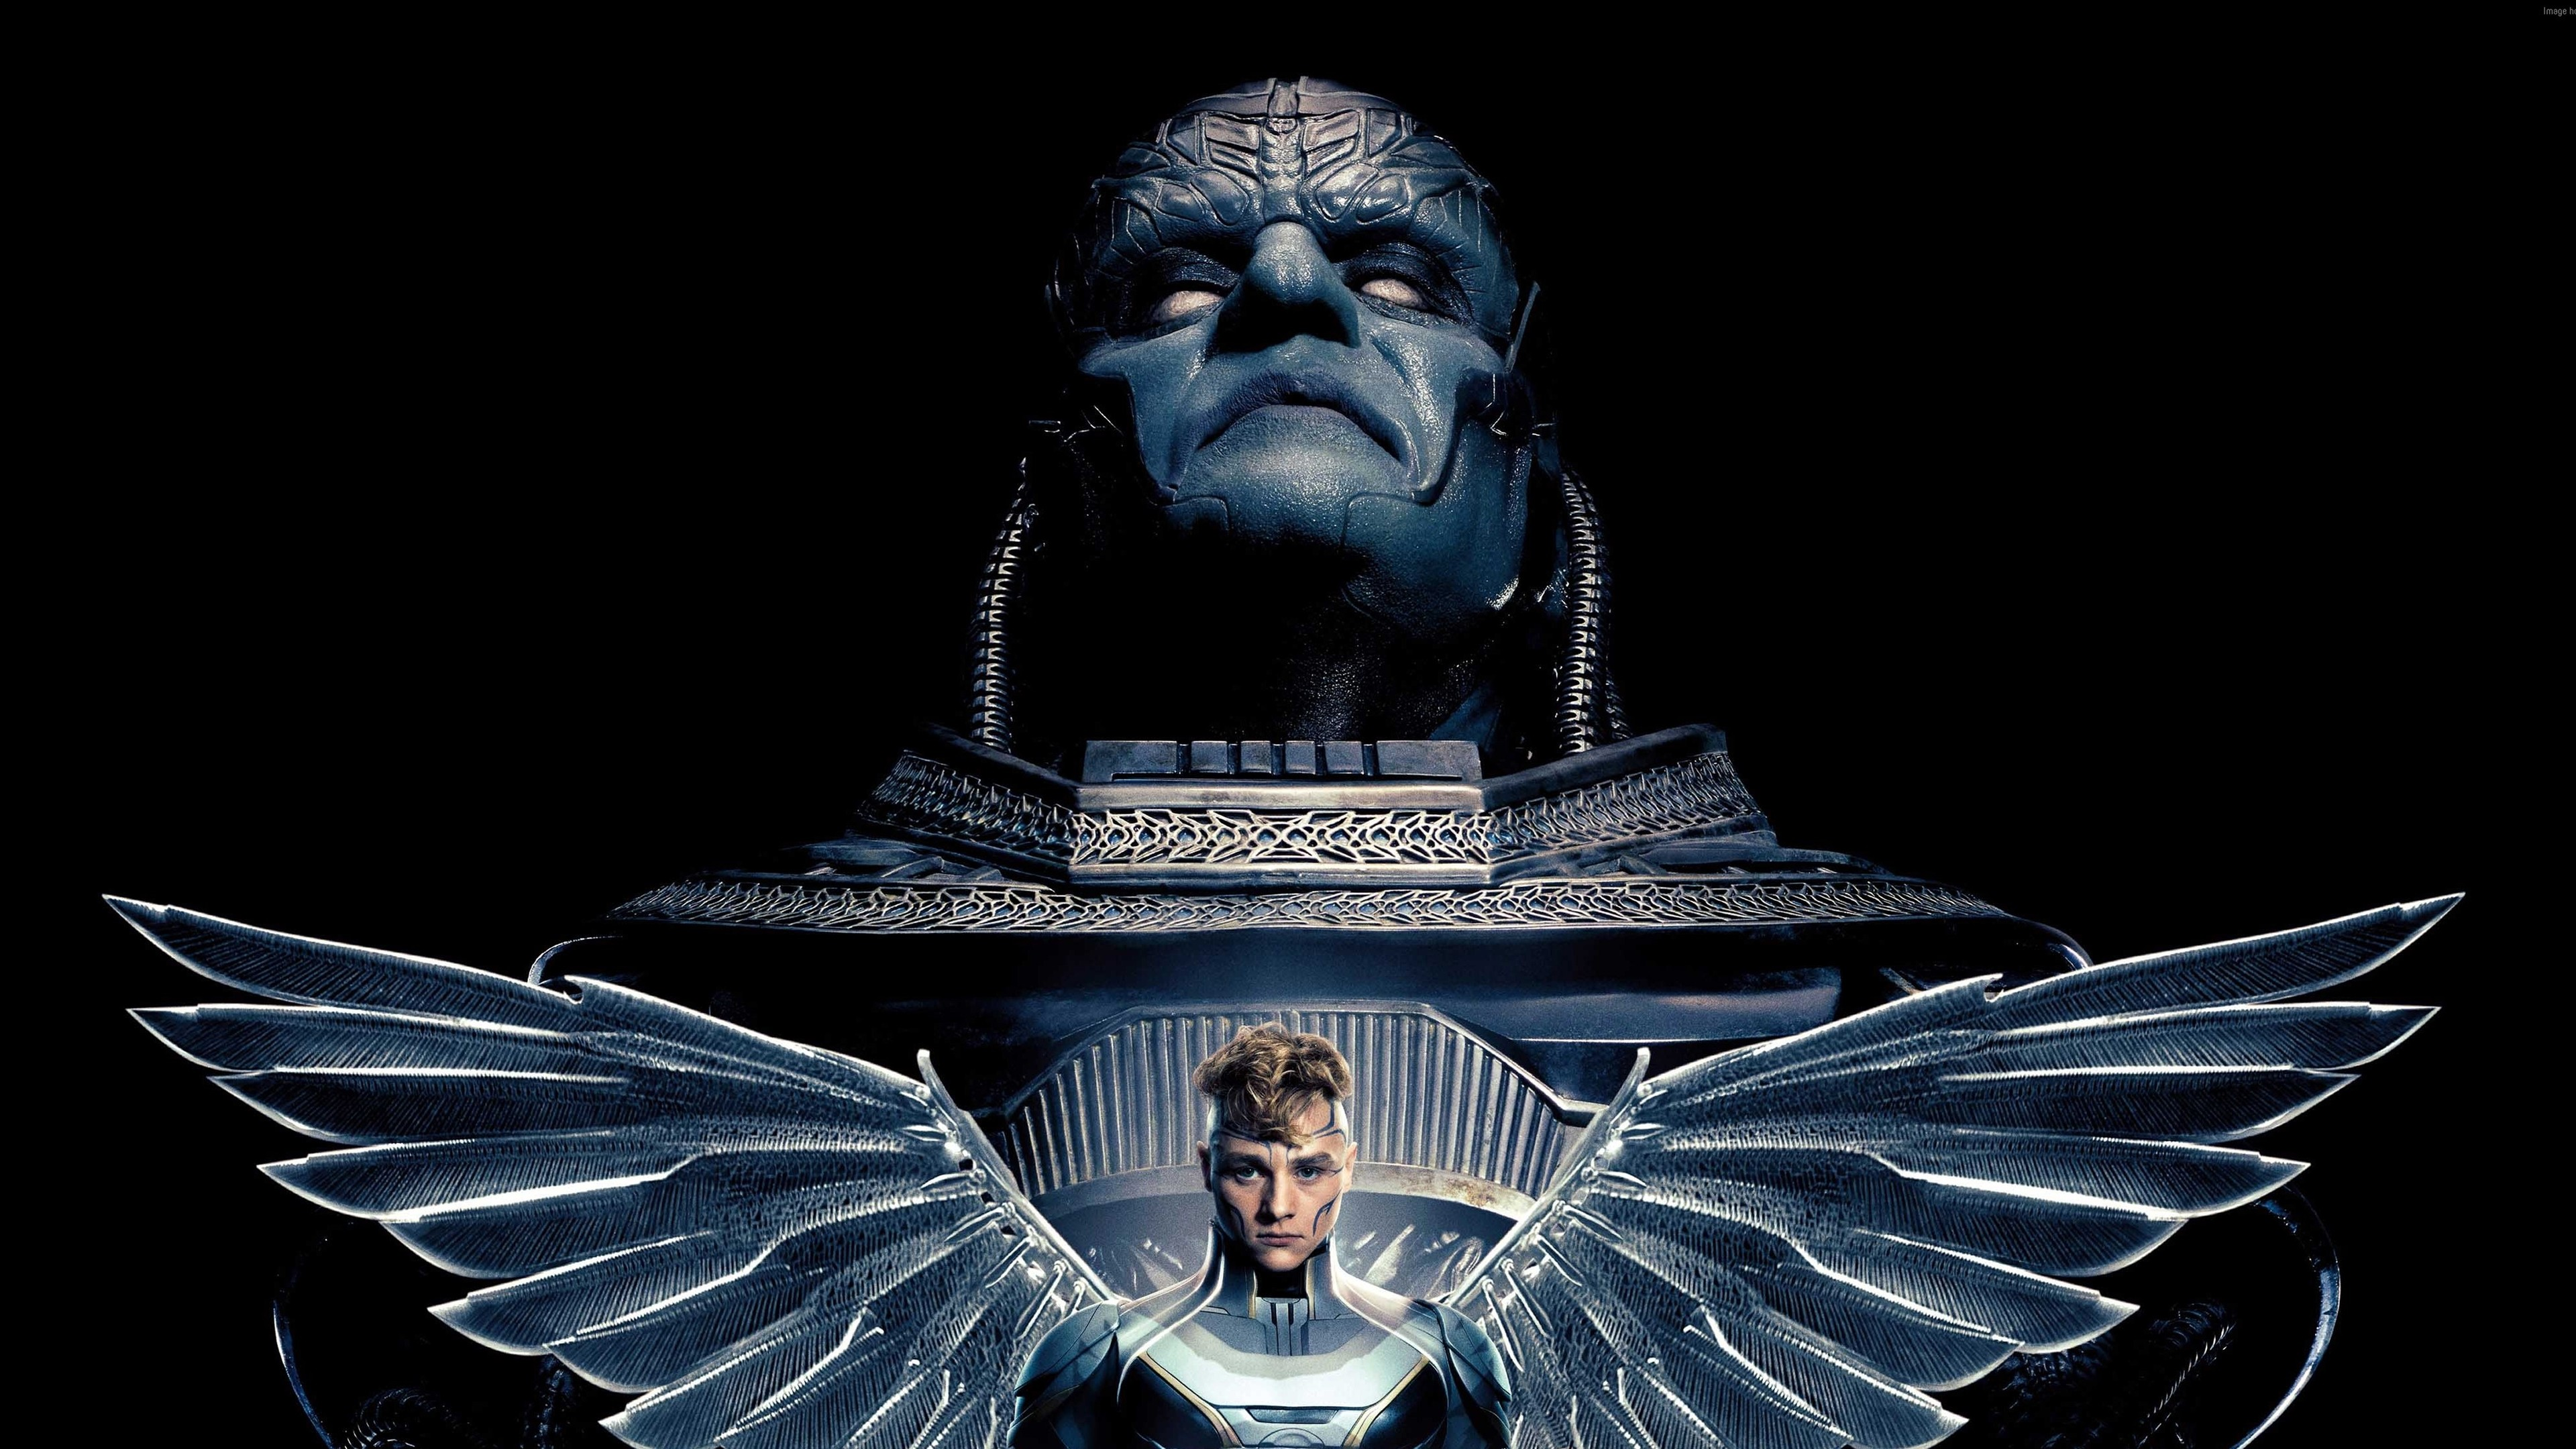 angel x men 1536363397 - ANGEL X MEN - x men apocalypse wallpapers, movies wallpapers, 2016 movies wallpapers